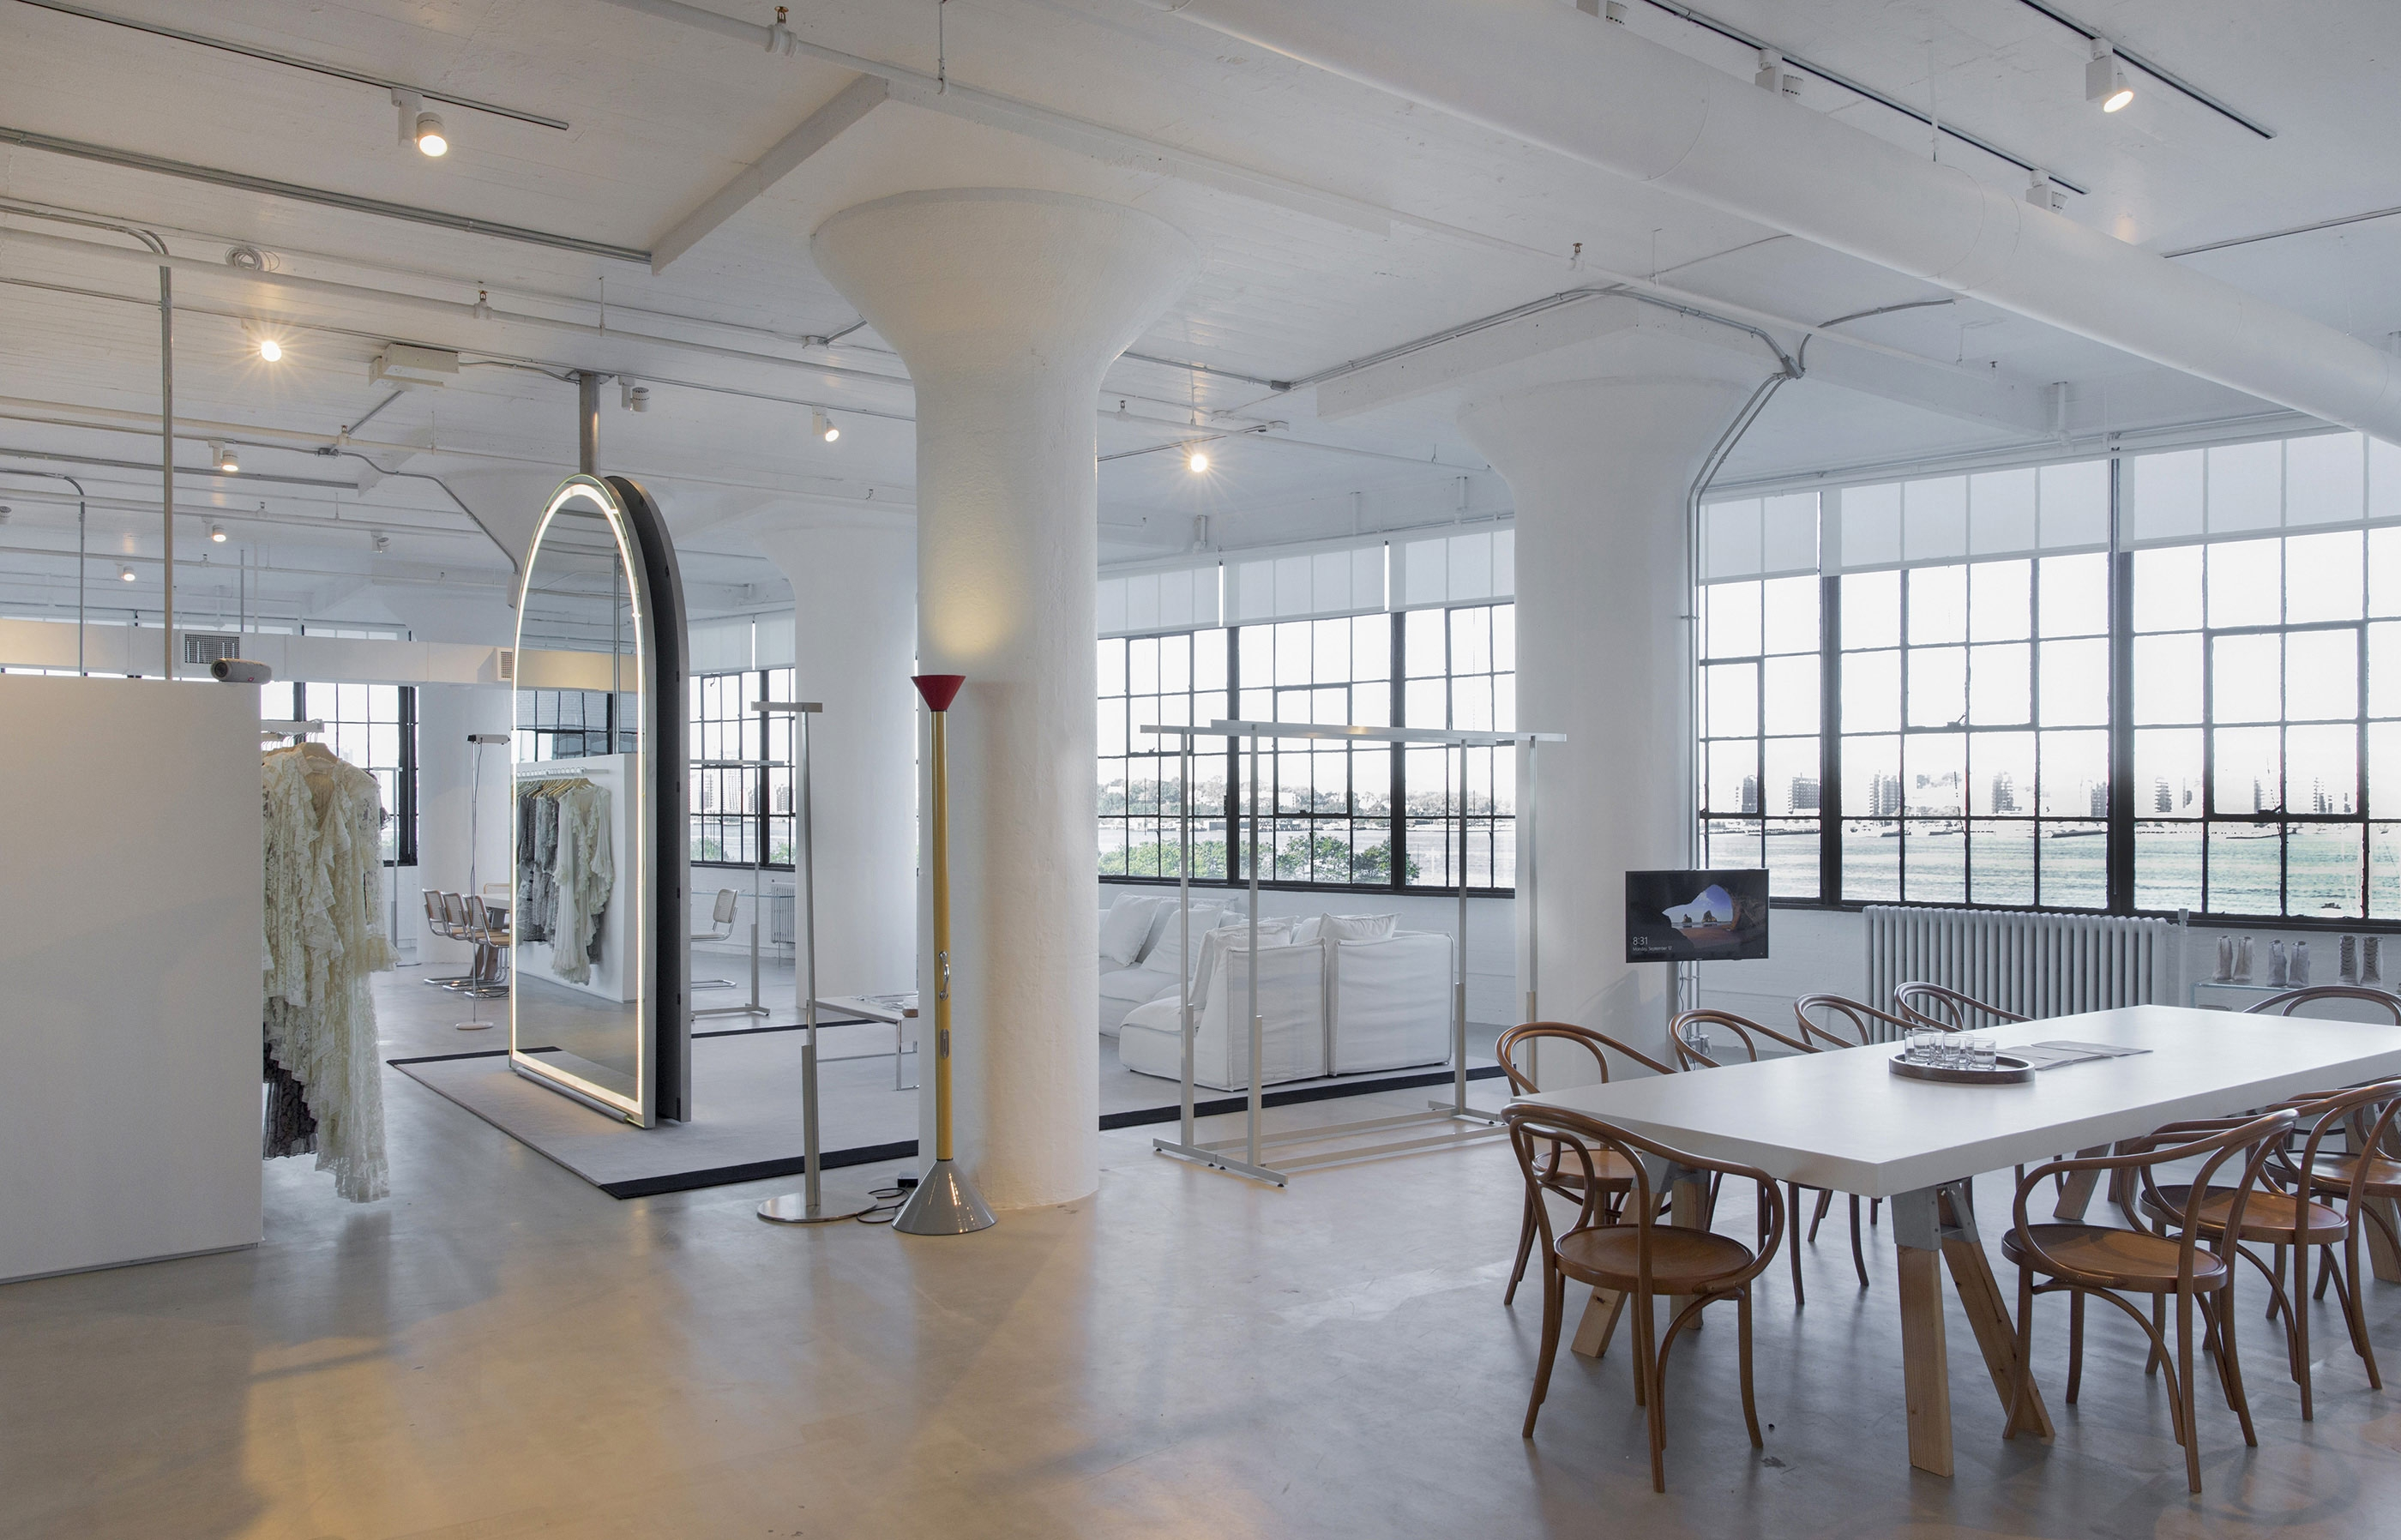 A mirror, meeting table, couch and clothing racks in our modern New York Office